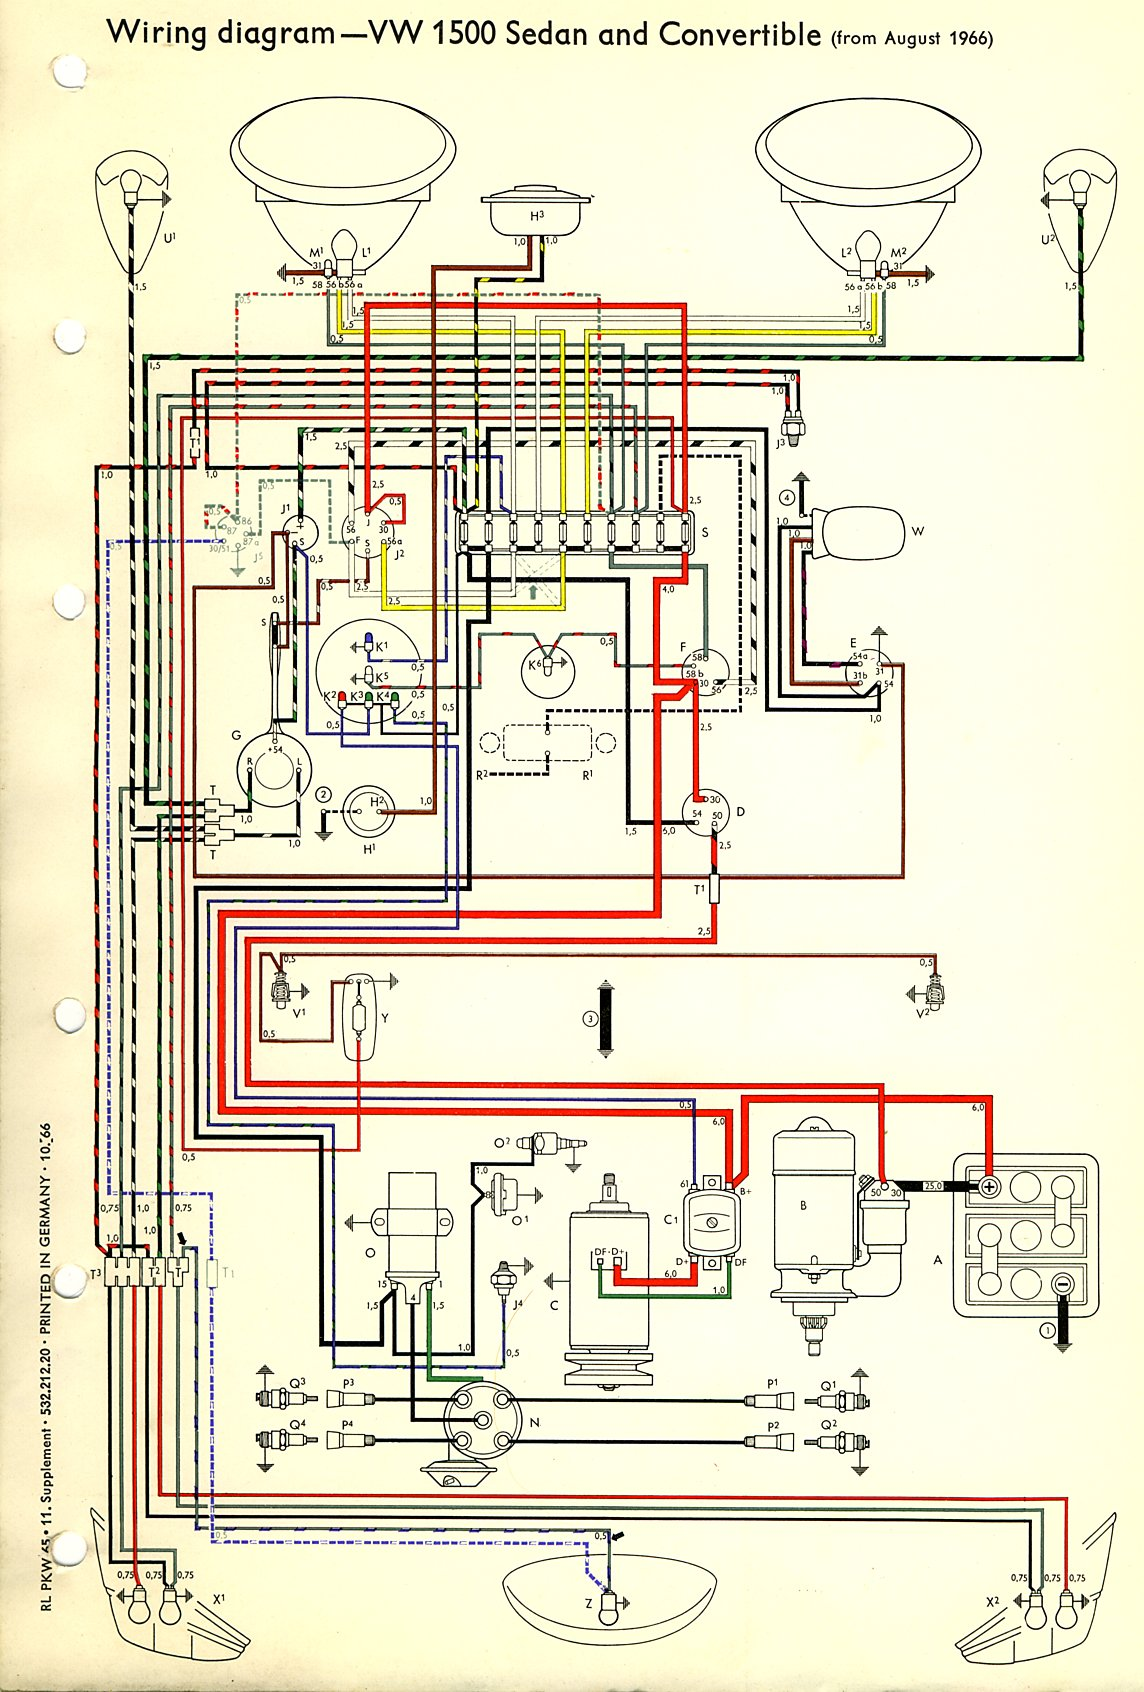 bug_67 1967 beetle wiring diagram thegoldenbug com 1973 Super Beetle Wiring Diagram at crackthecode.co